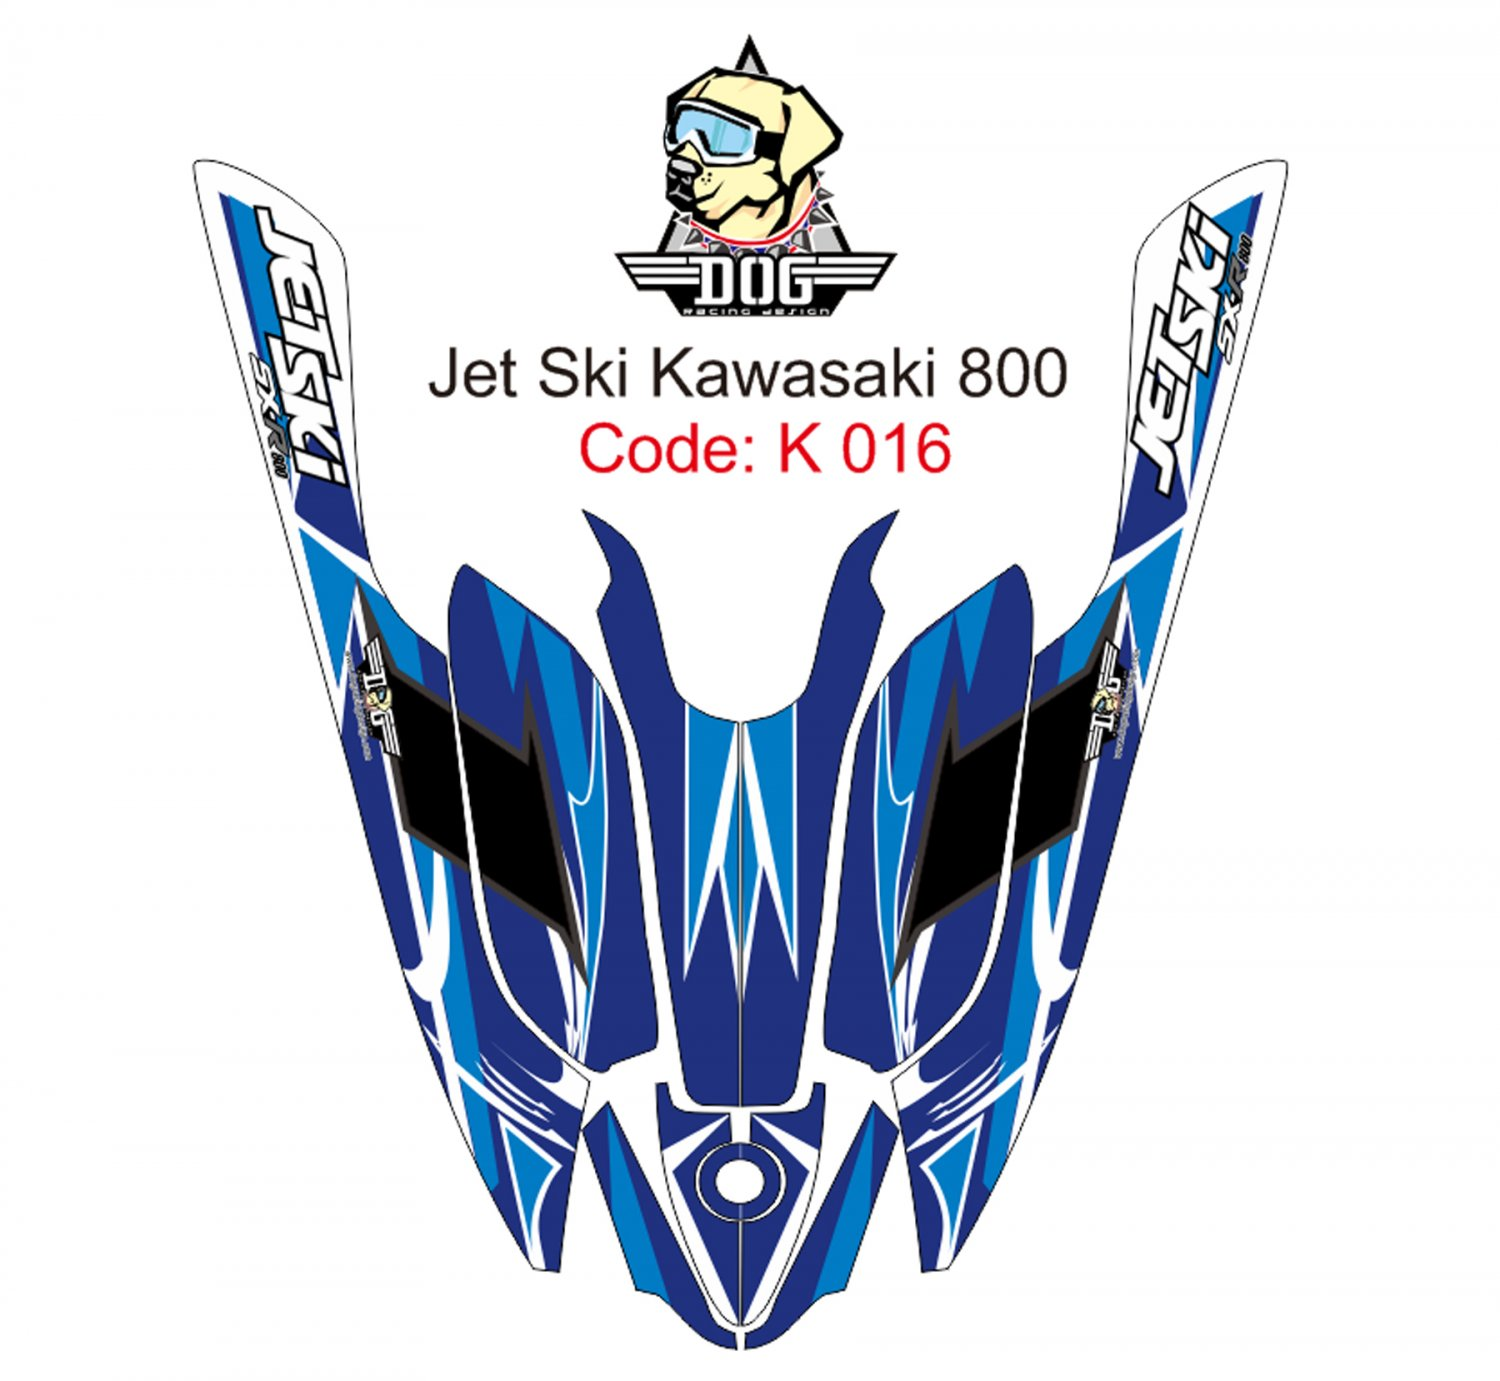 KAWASAKI 800 JET SKI GRAPHIC DECAL KIT CODE.K 016